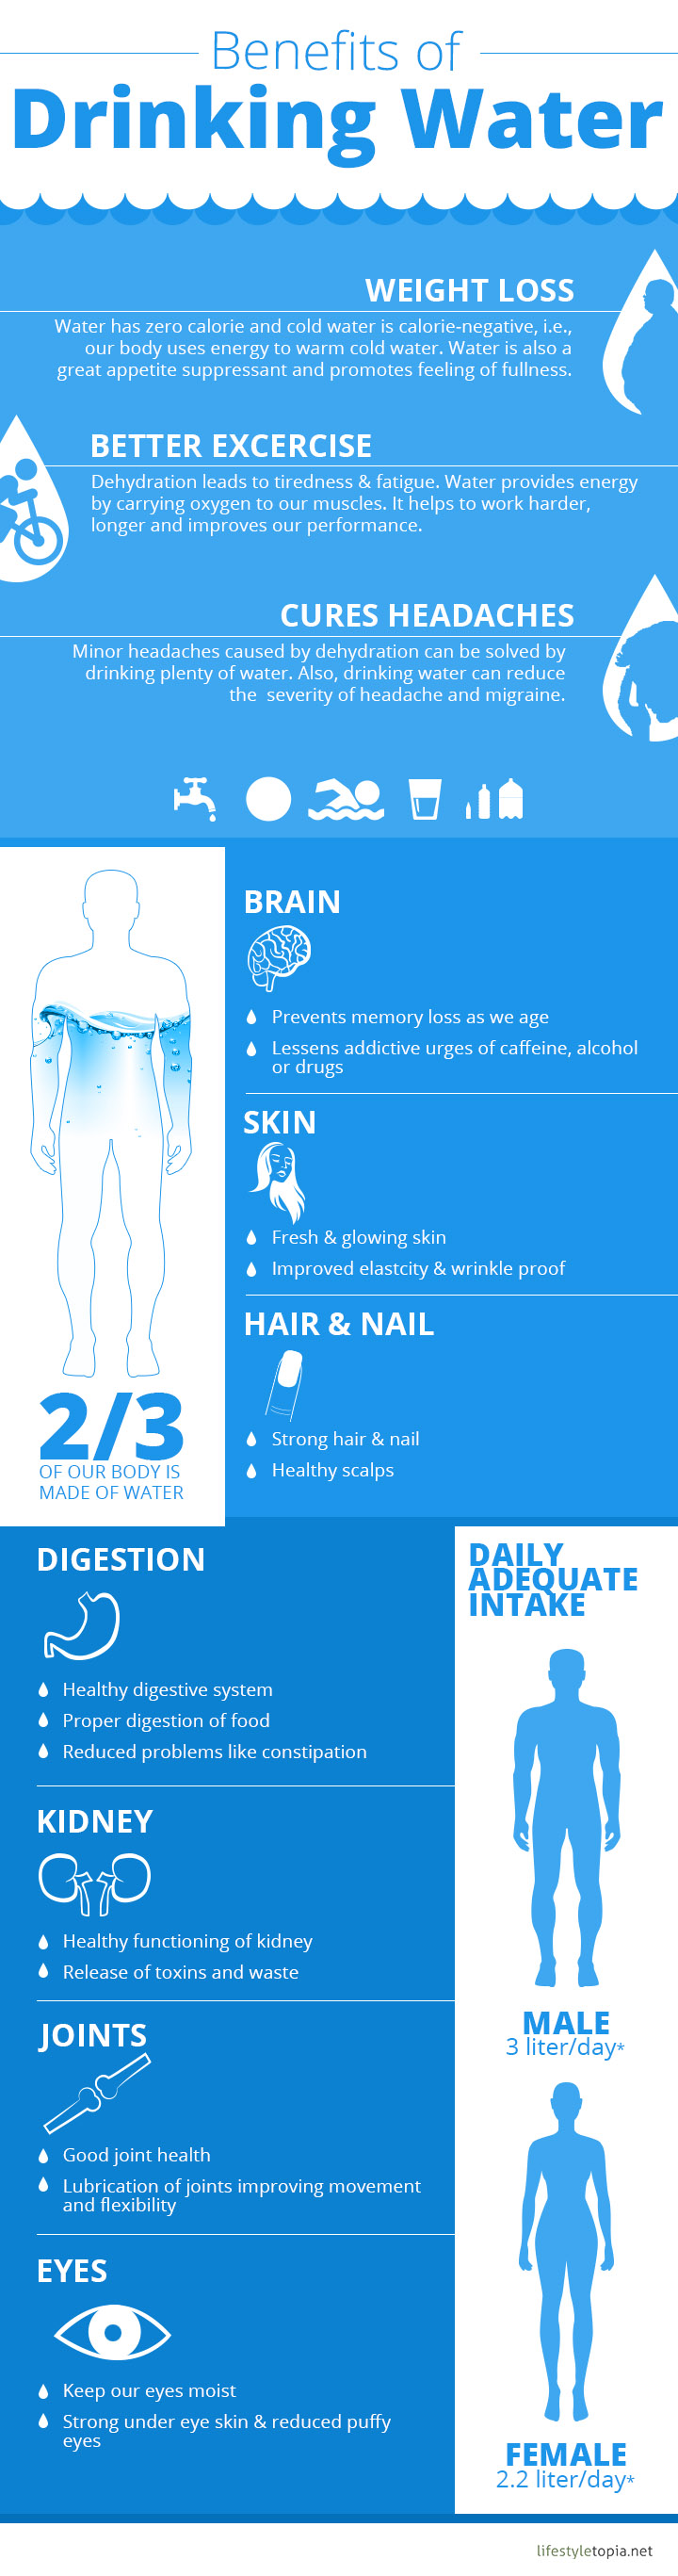 Benefits of Drinking Water Facts Infographic